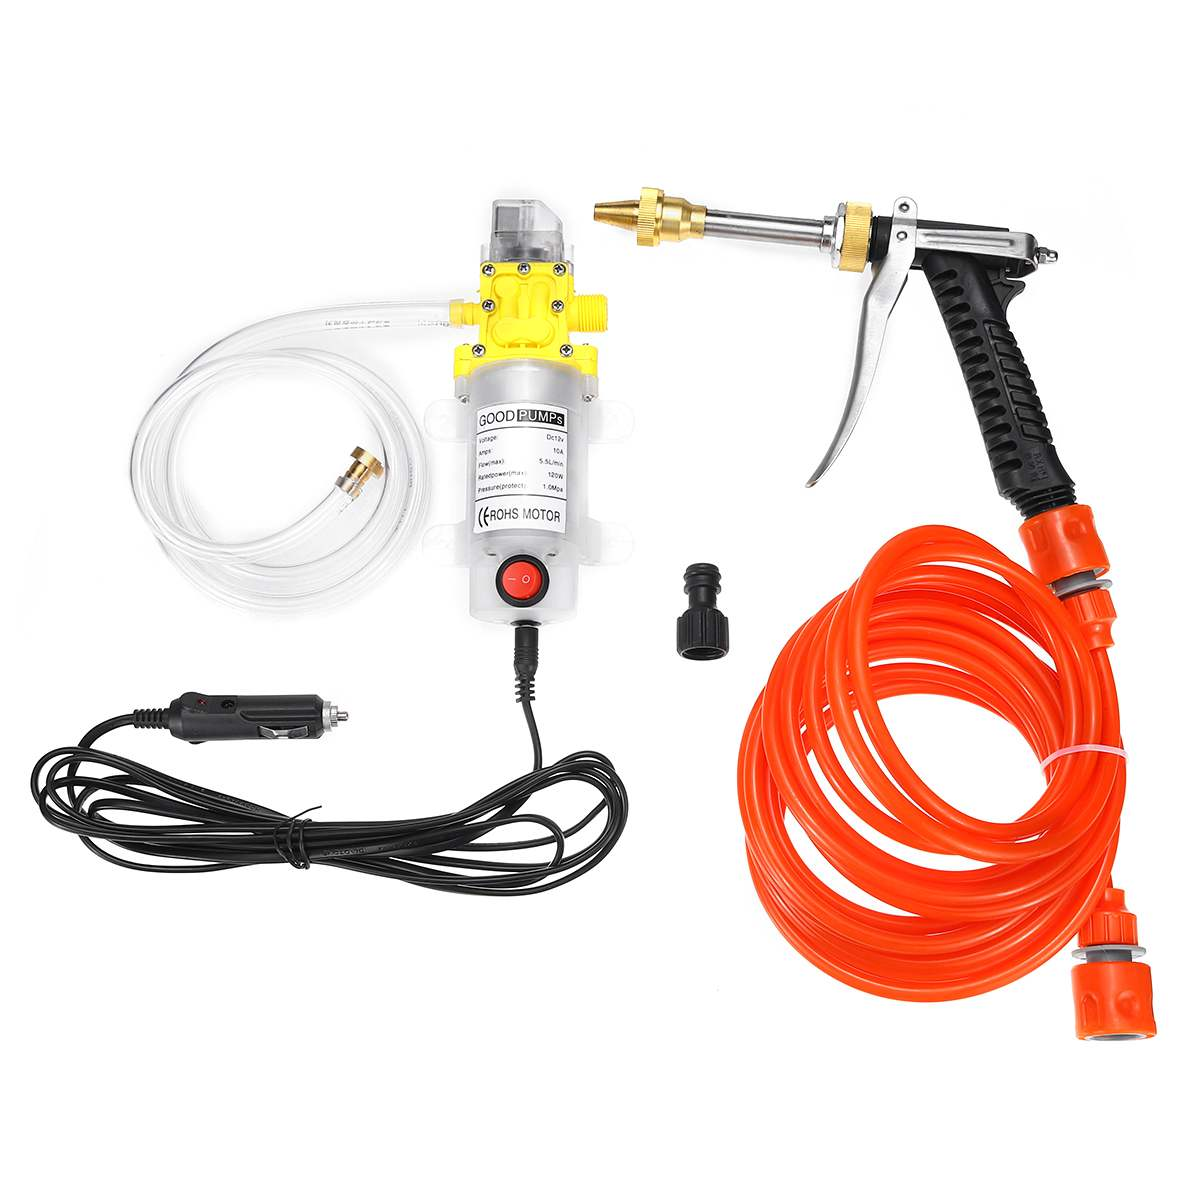 DC 12V 120W Electric Water Pump High Pressure Diaphragm Self Priming Water Pump Sprayer Car Wash 12 V